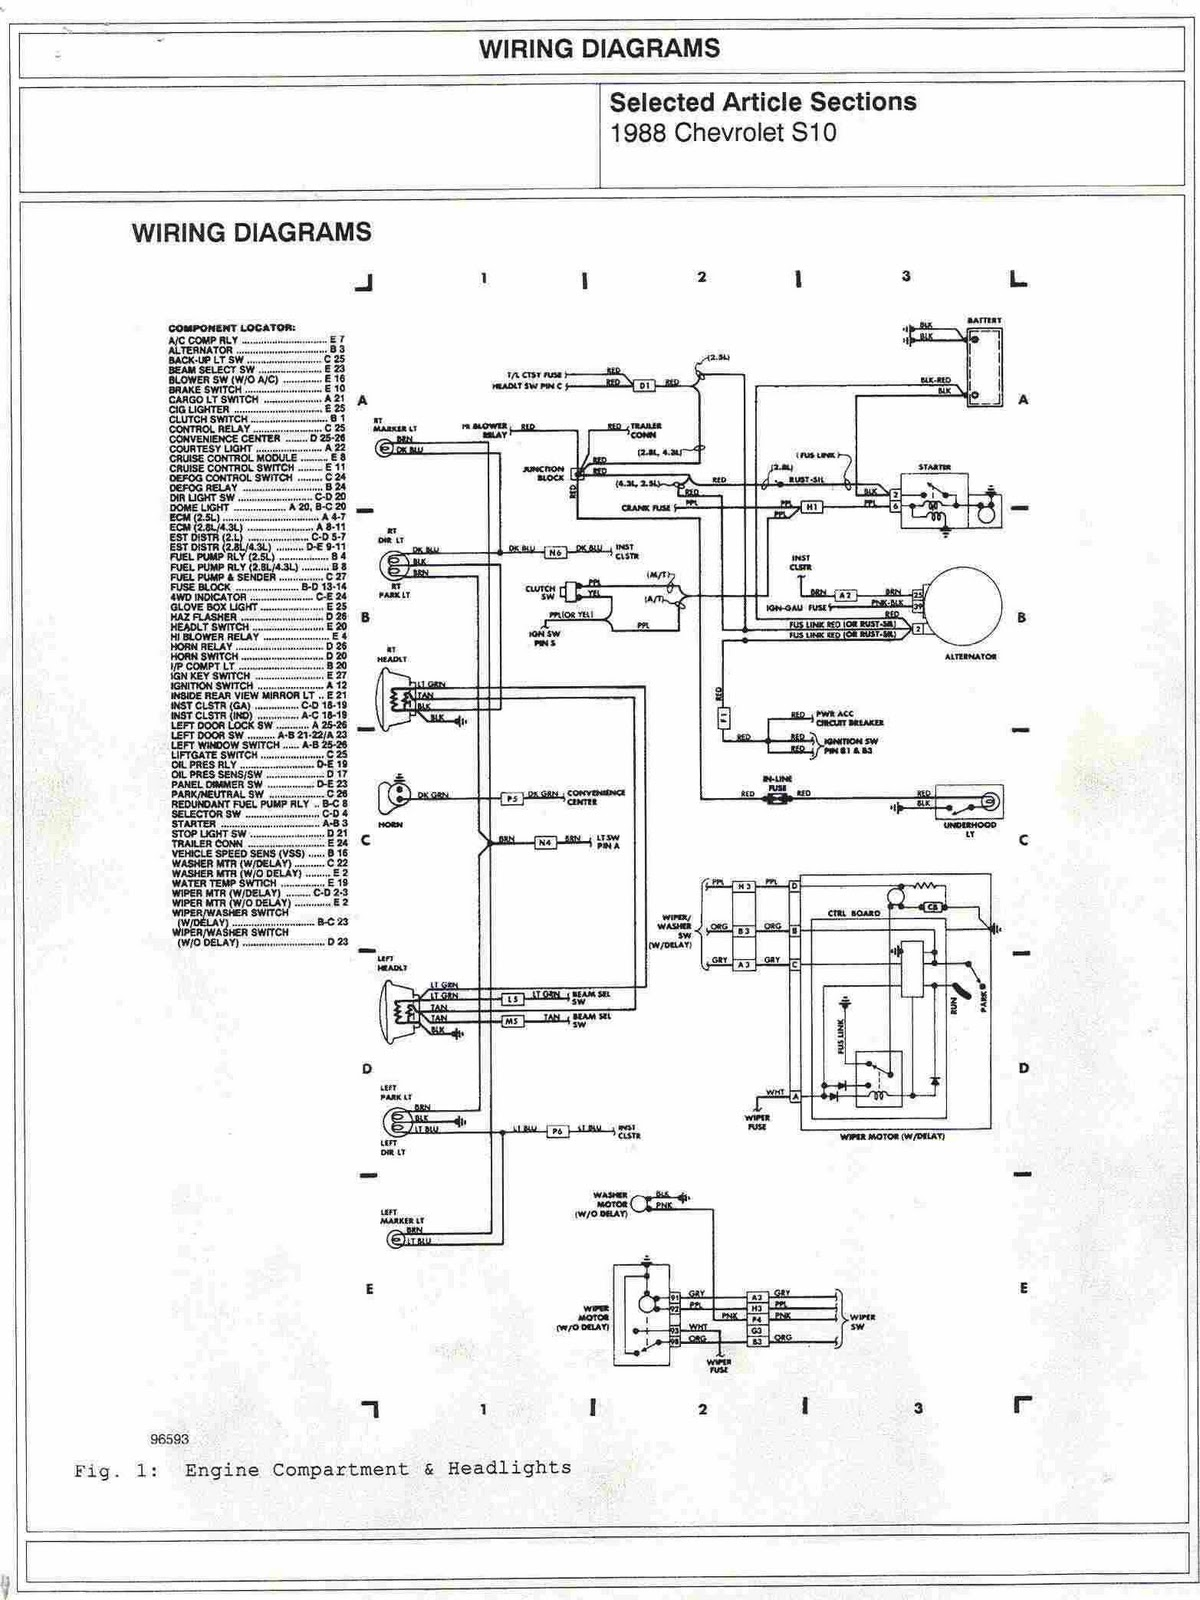 1988+Chevrolet+S10+Engine+Compartment+and+Headlights+Wiring+Diagrams 95 s10 wiring diagram 95 tahoe wiring diagram \u2022 wiring diagrams  at love-stories.co